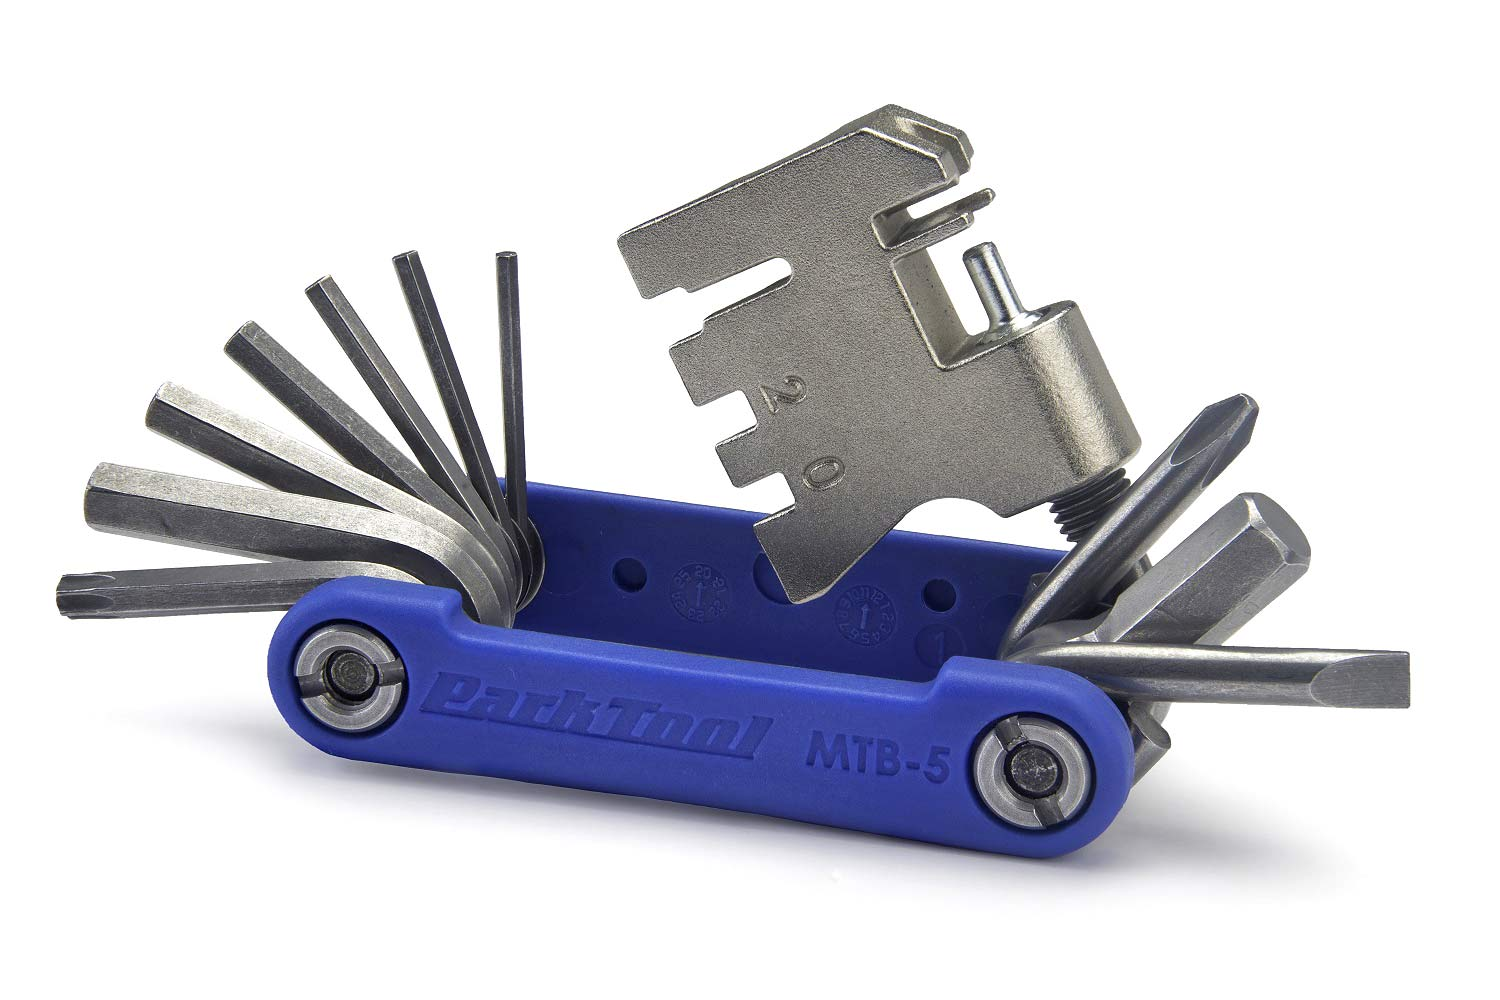 Park Tool to the MTB-5 Rescue Multi-Tool